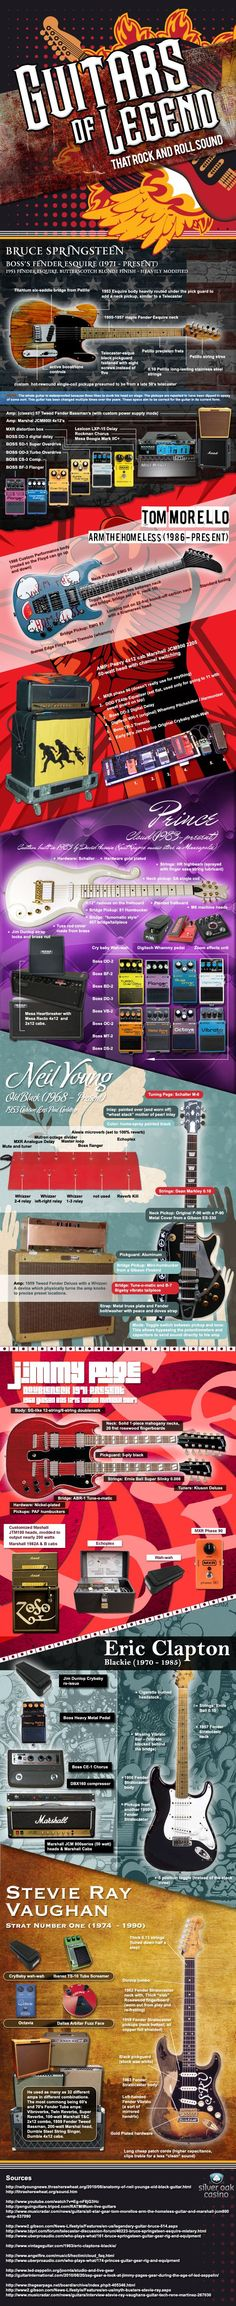 Guitars of Legend: That Rock and Roll Sound